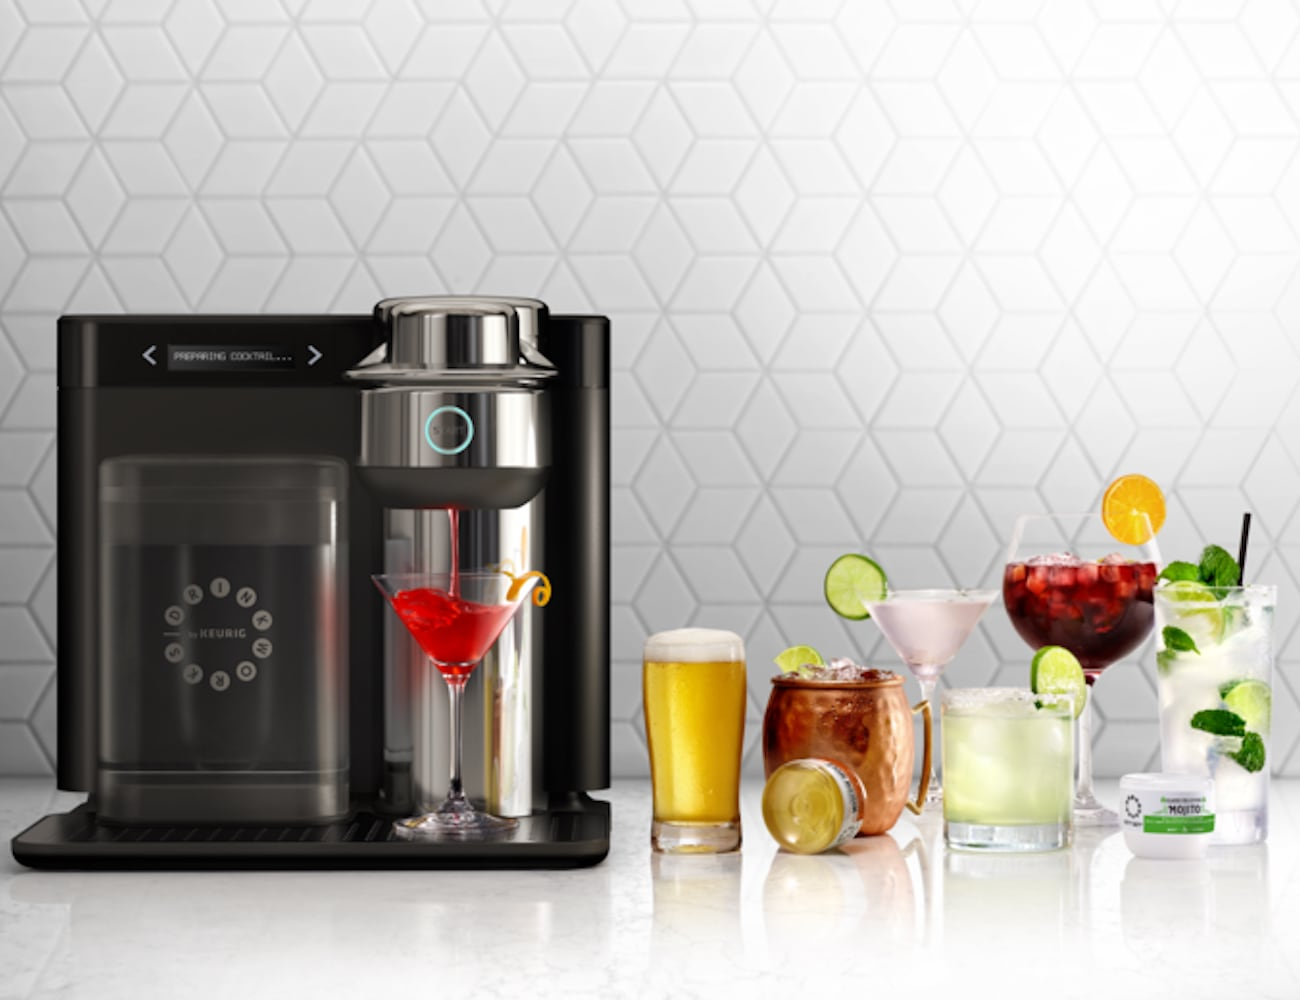 Keurig Drinkworks Drinkmaker Home Bar Machine